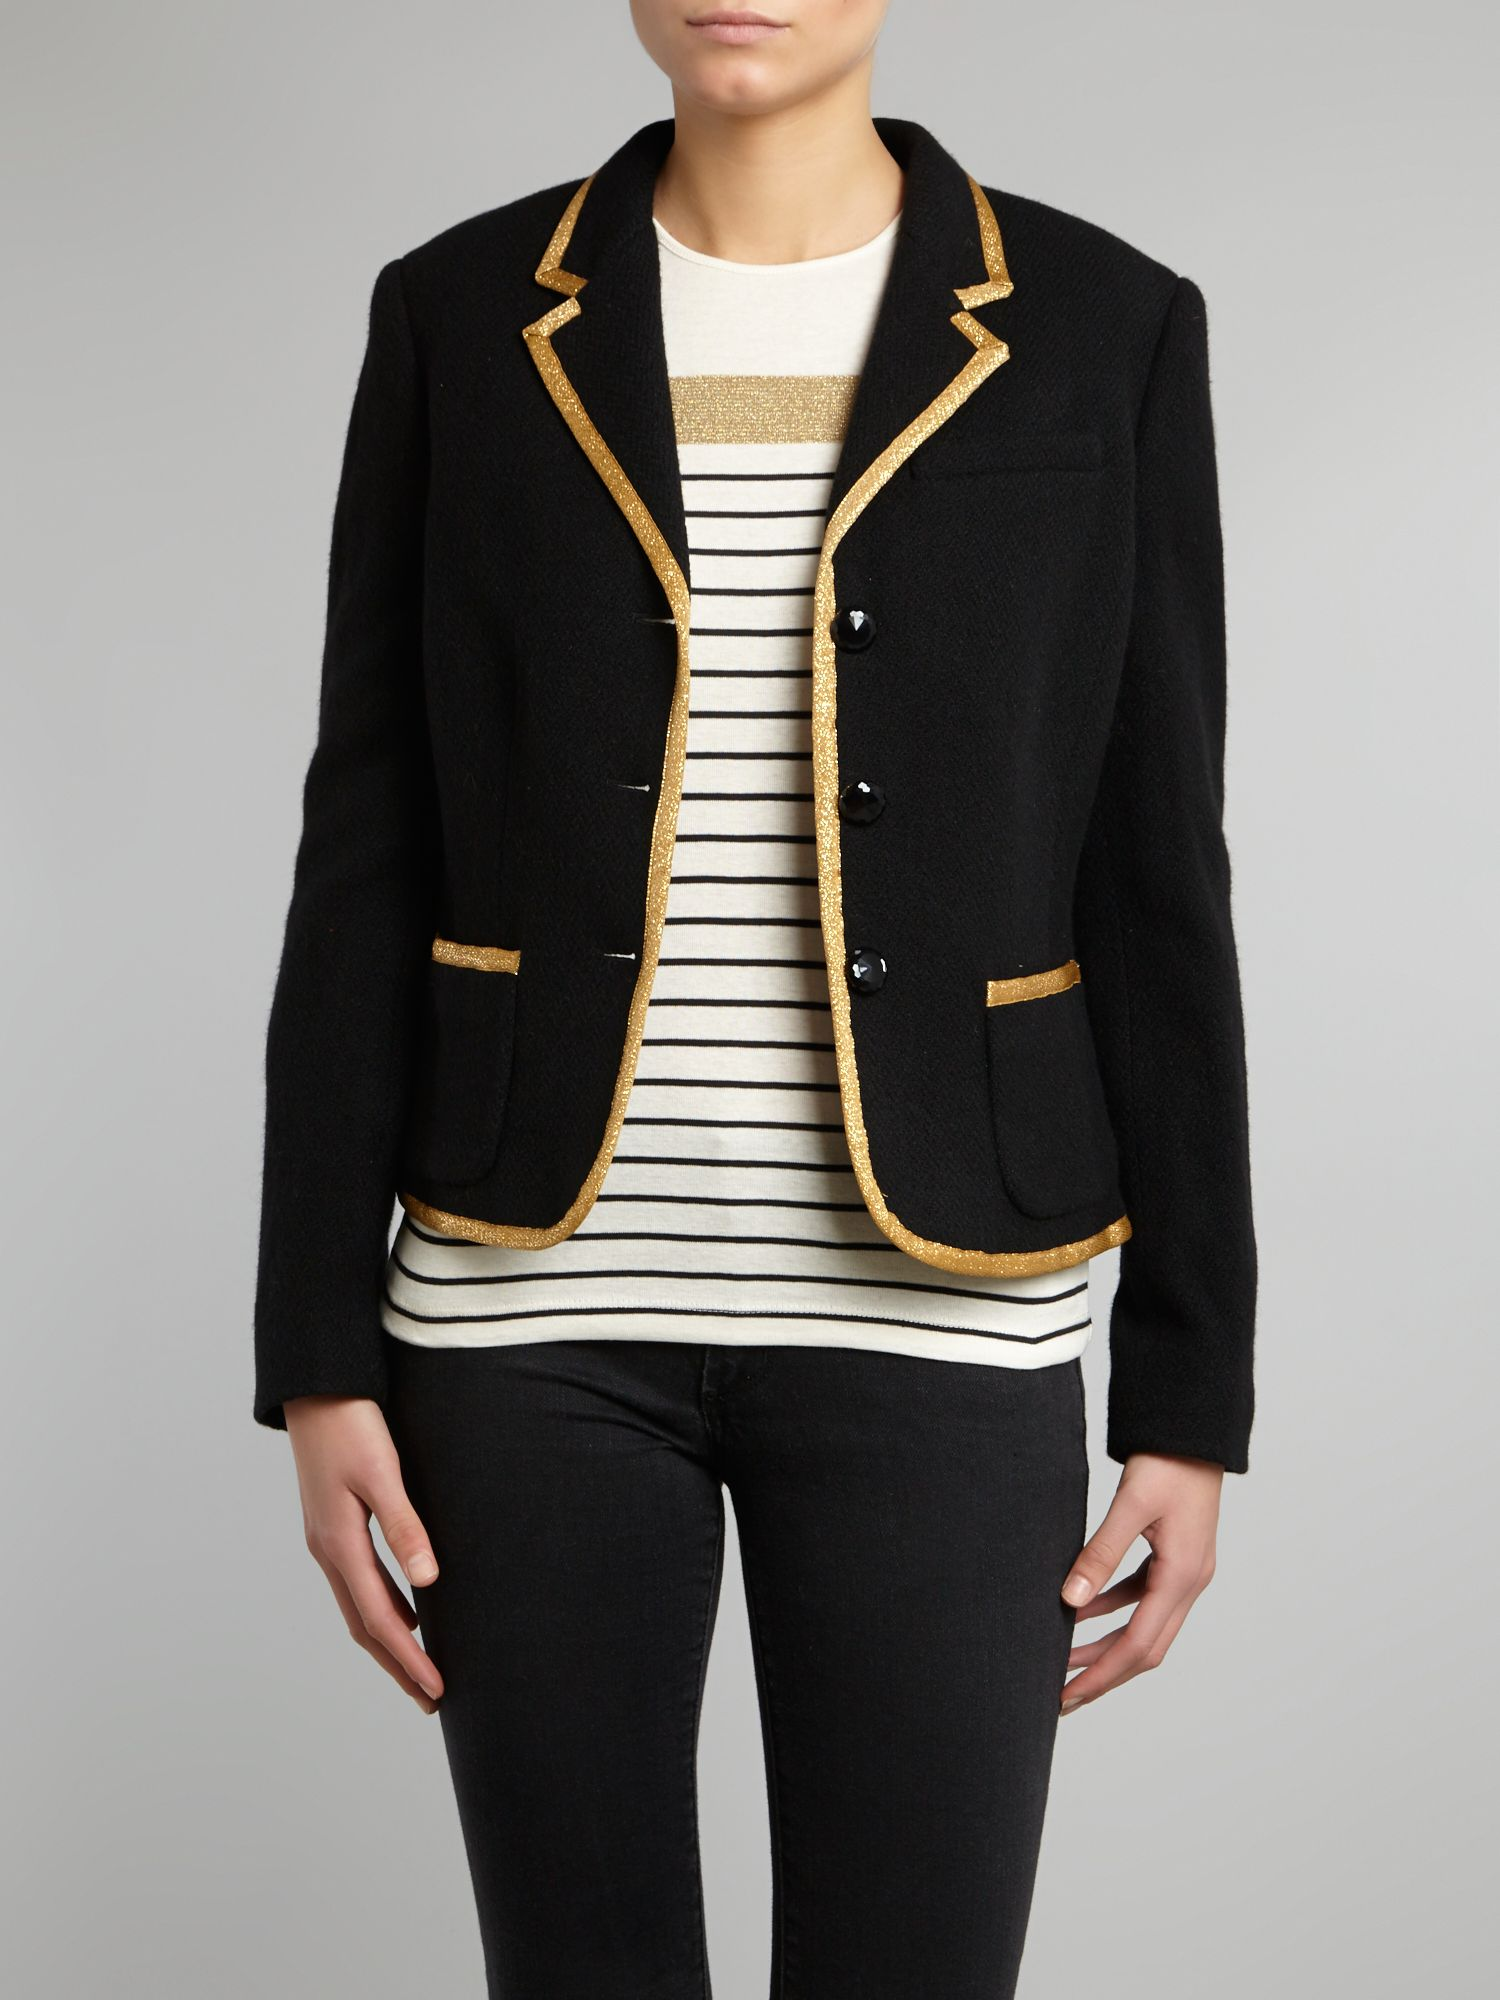 3 button jacket with gold trim